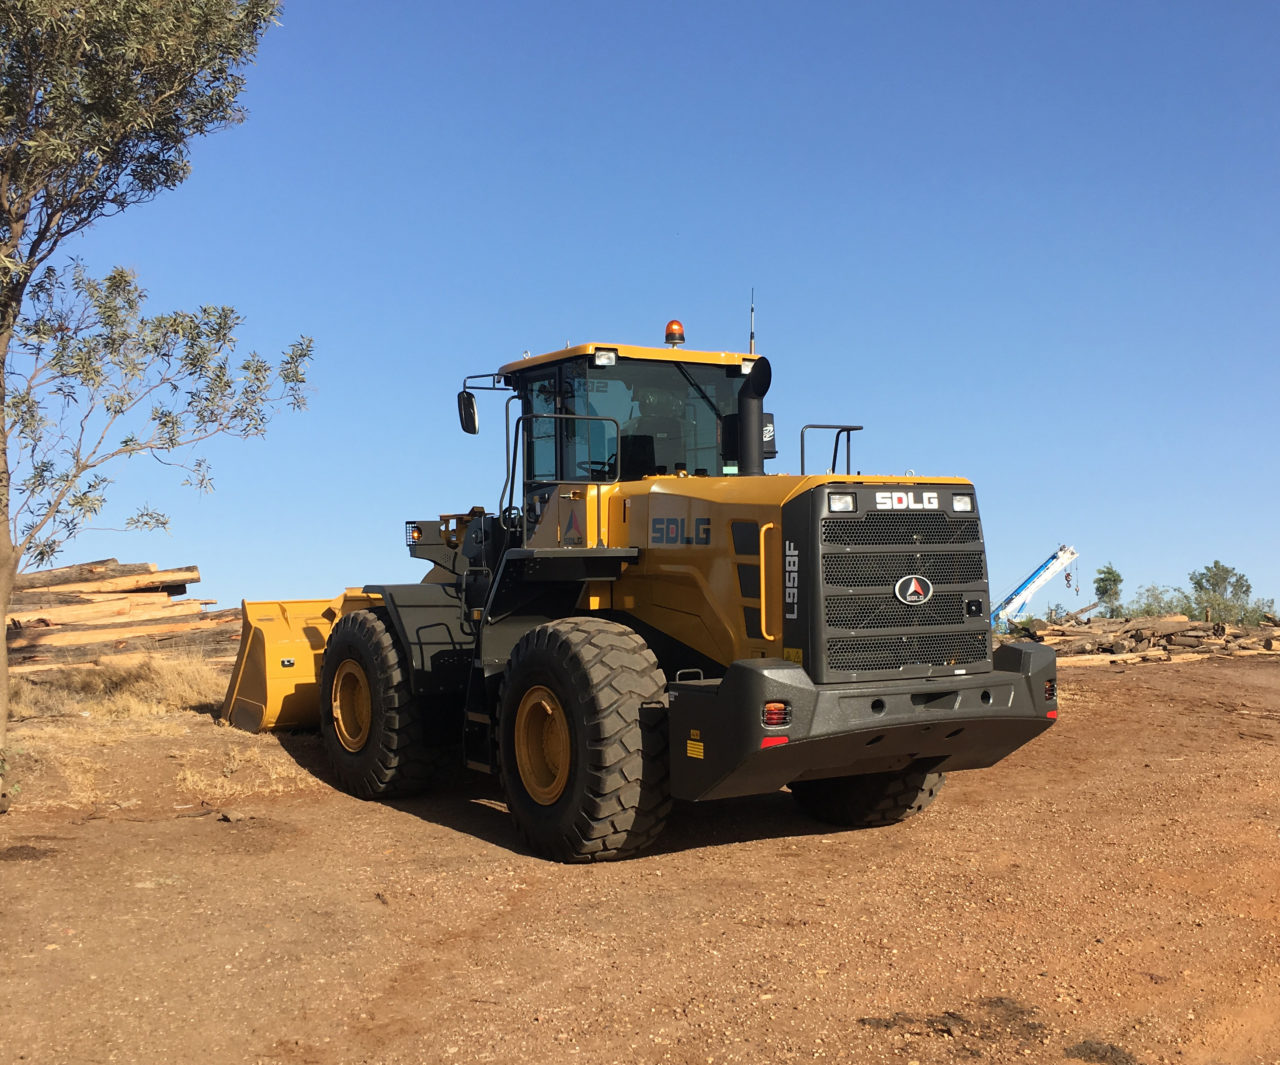 The SDLG L958F Wheel Loader always gets the job done! 49